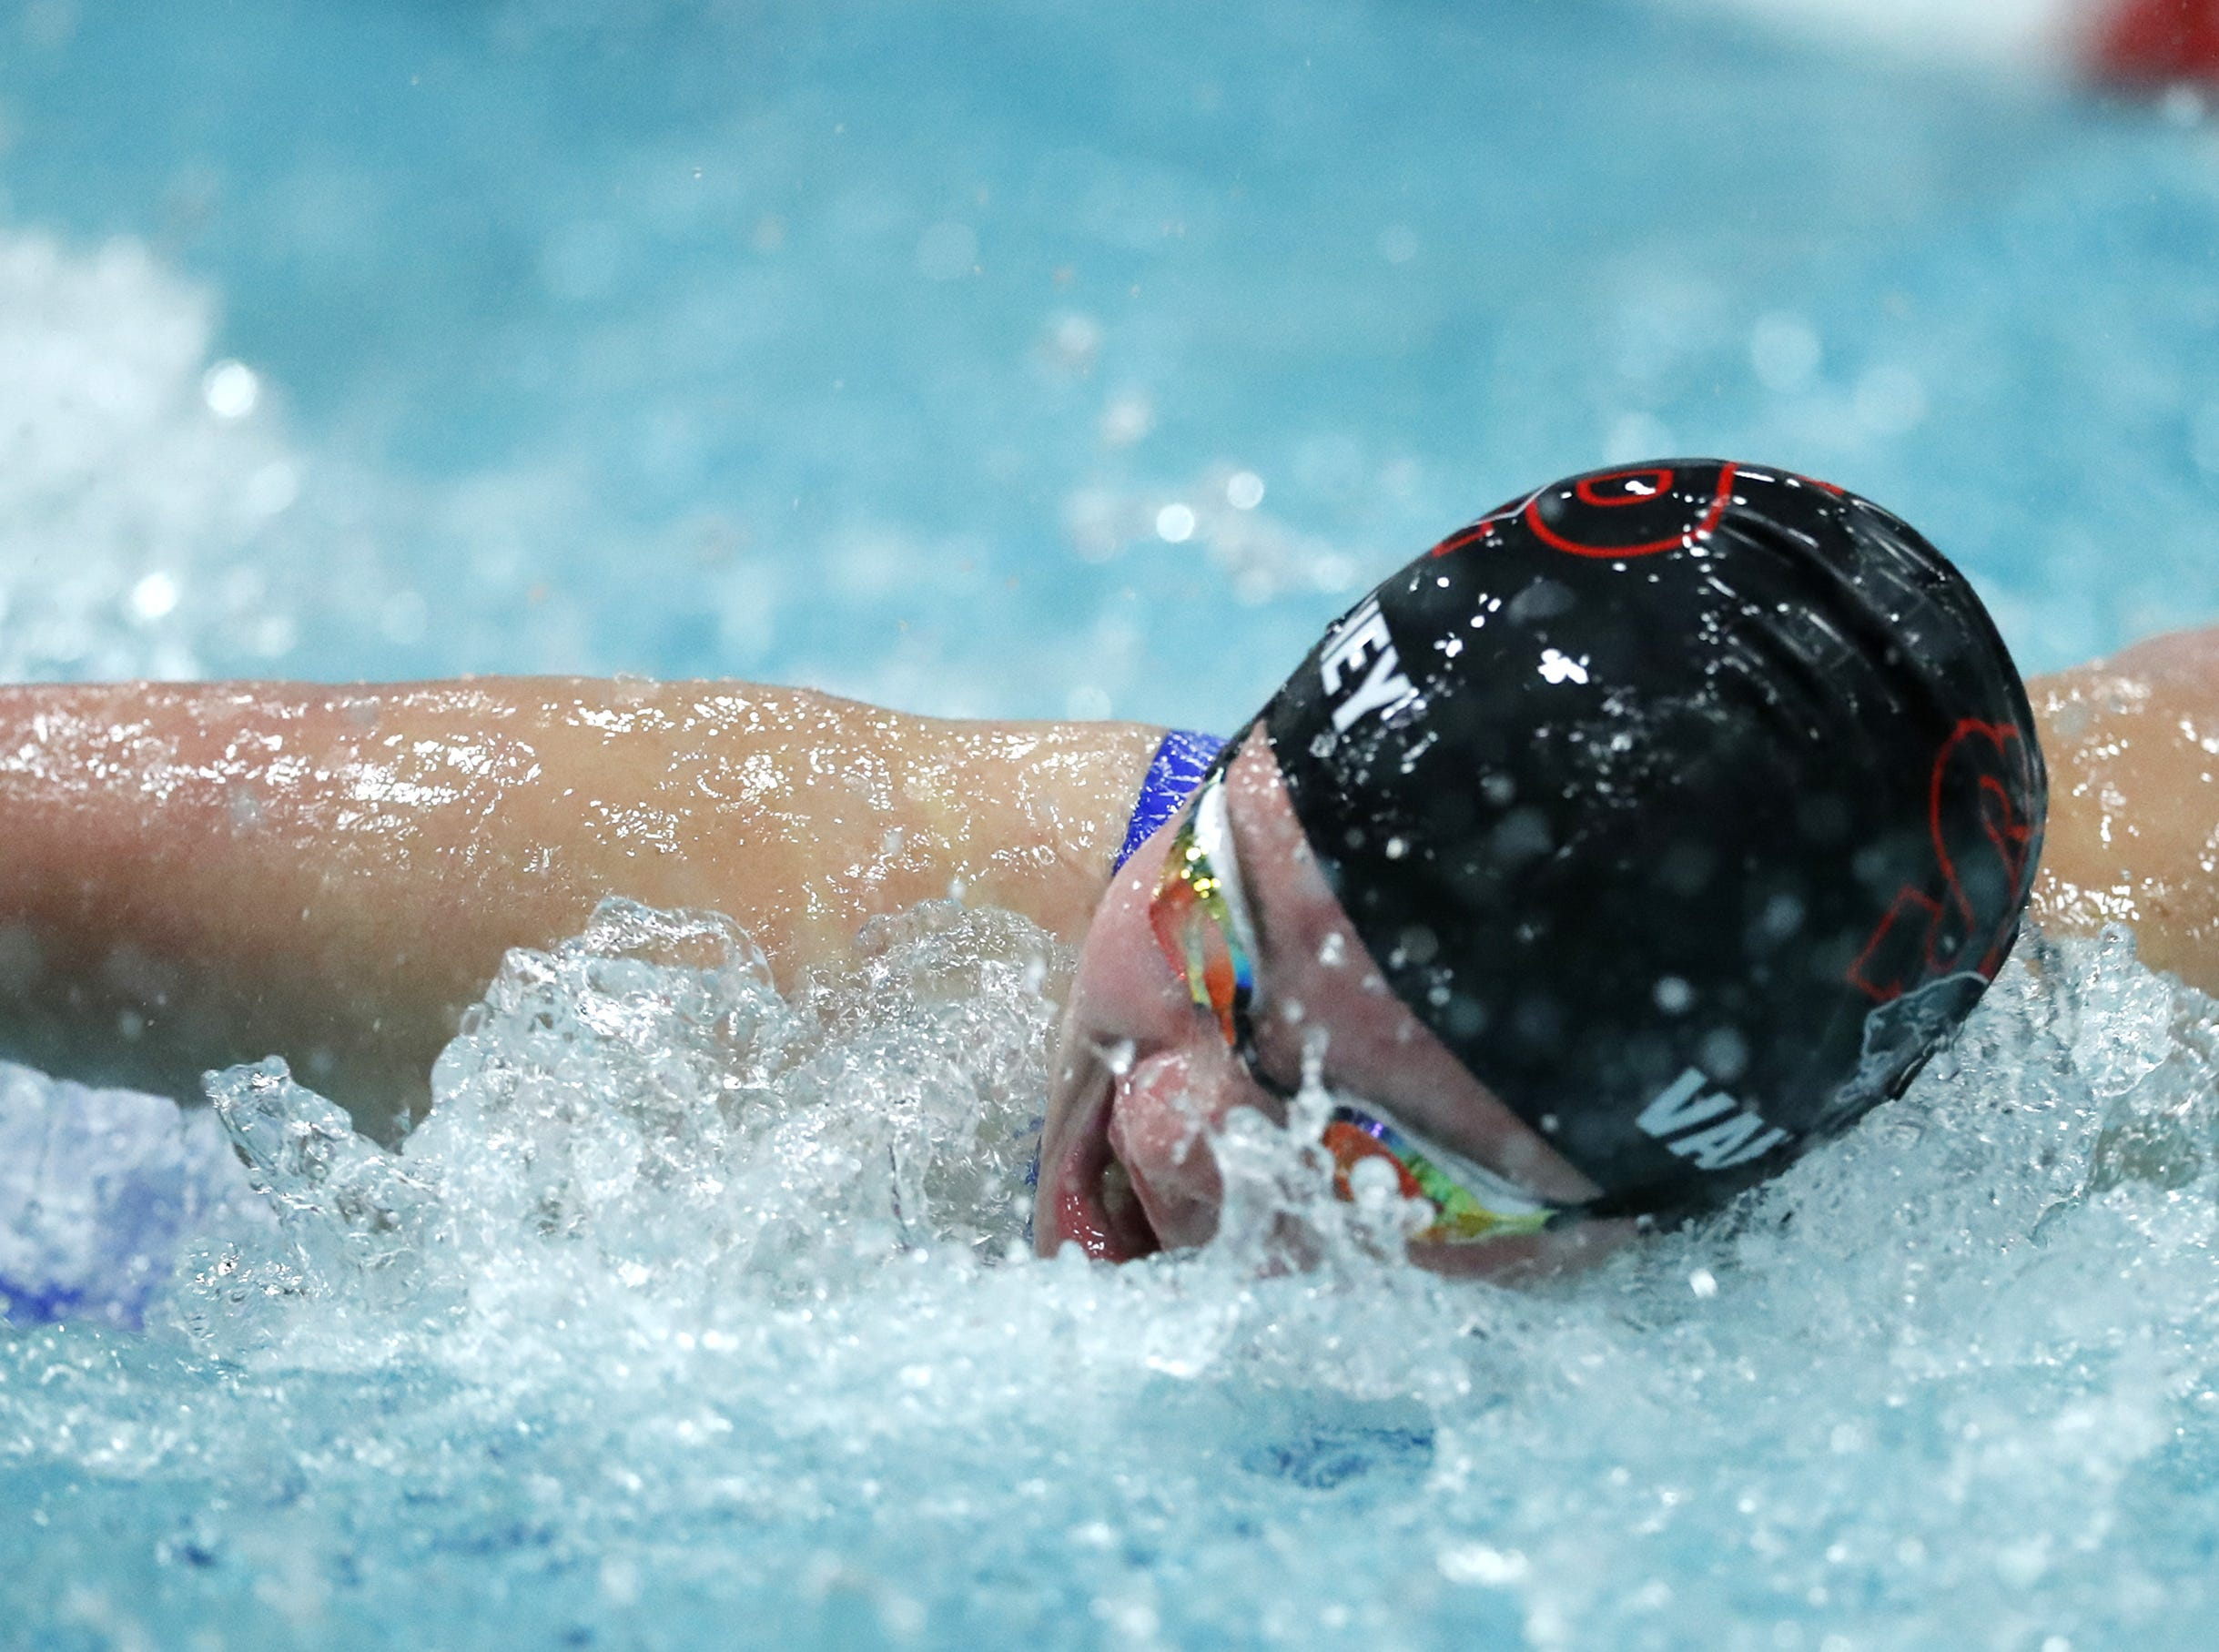 Stevens PointÕs Anna Vandehey races in the 100 yard butterfly during the WIAA Division 1 State Swimming and Diving meet Saturday, Nov. 10, 2018, at the UW Natatorium in Madison, Wis. Danny Damiani/USA TODAY NETWORK-Wisconsin